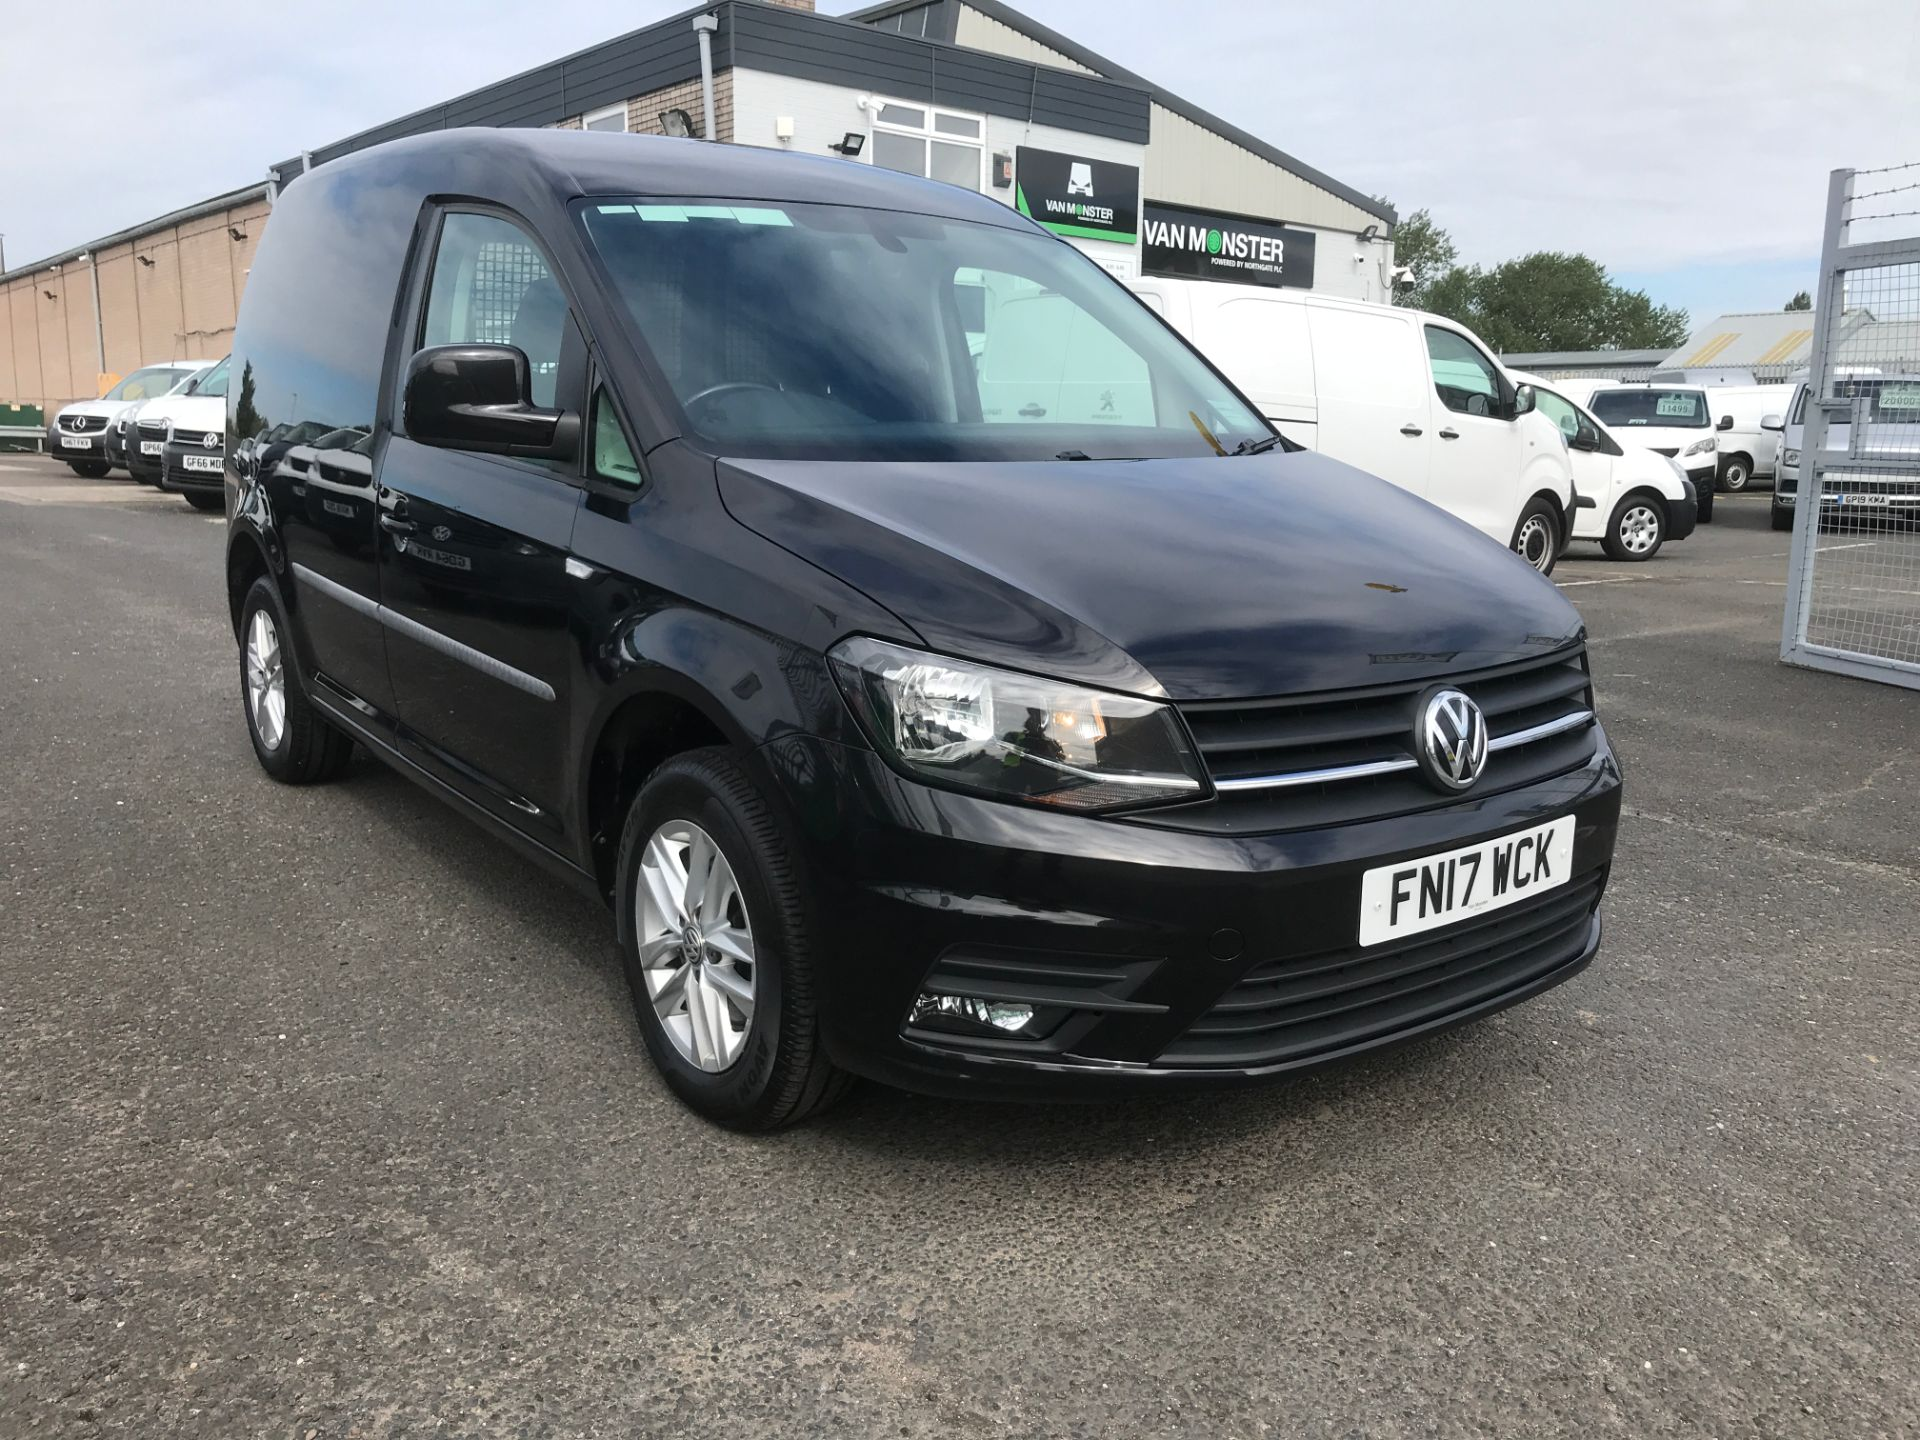 2017 Volkswagen Caddy 2.0TDI BLUEMOTION TECH 102PS HIGHLINE EURO 6 (FN17WCK)